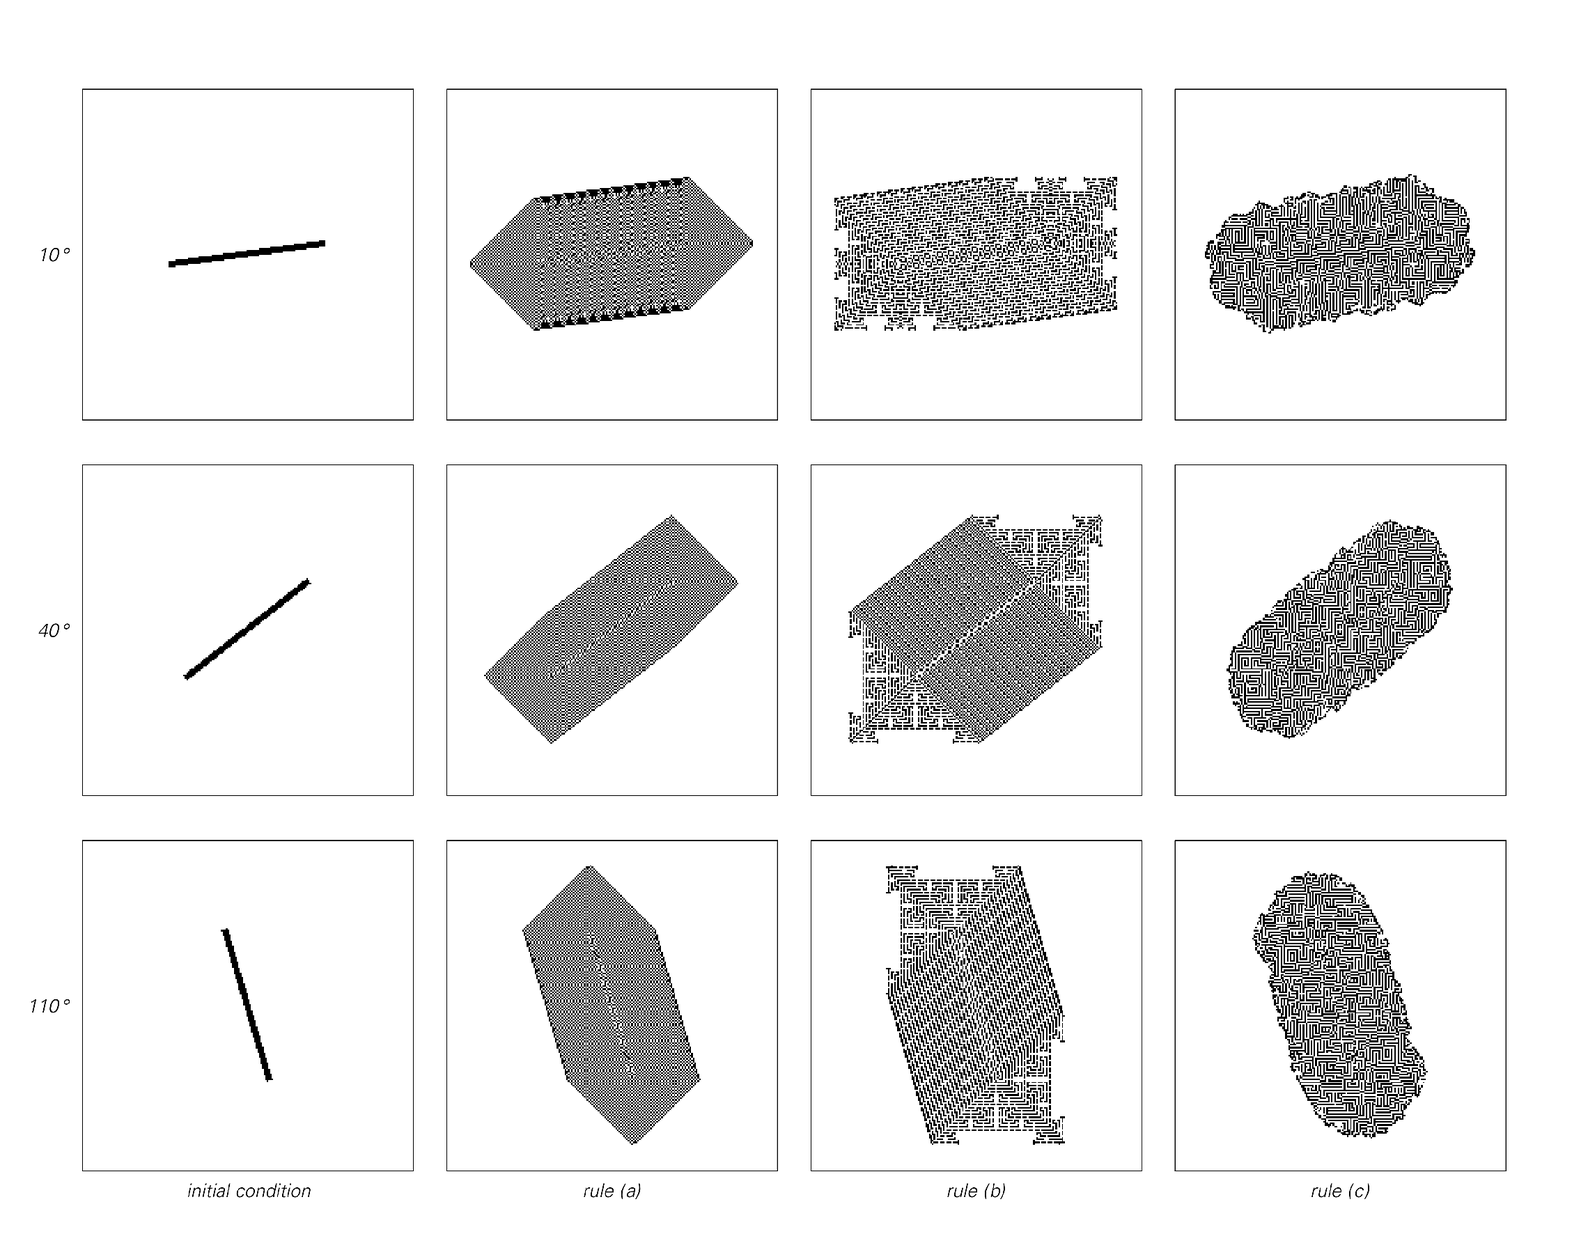 Examples of orientation dependence in behavior of two-dimensional cellular automata